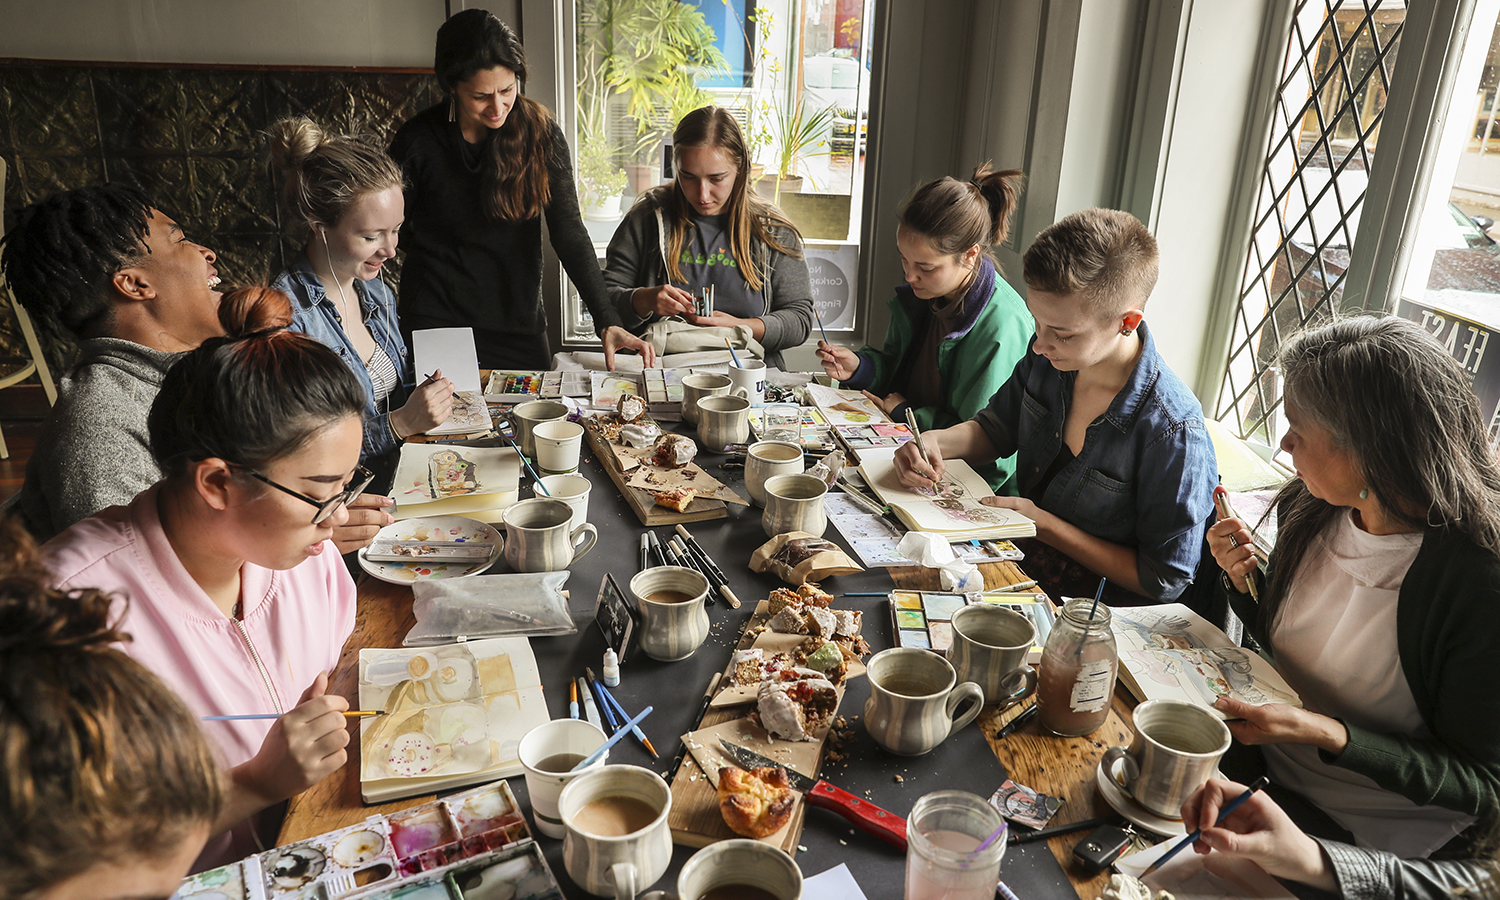 """Students paint gourmet donuts during their """"Watercolor Sketching"""" class with Associate Professor of Art and Architecture Kirin Makker at H.J. Stead Company on Linden Street in Geneva, N.Y."""